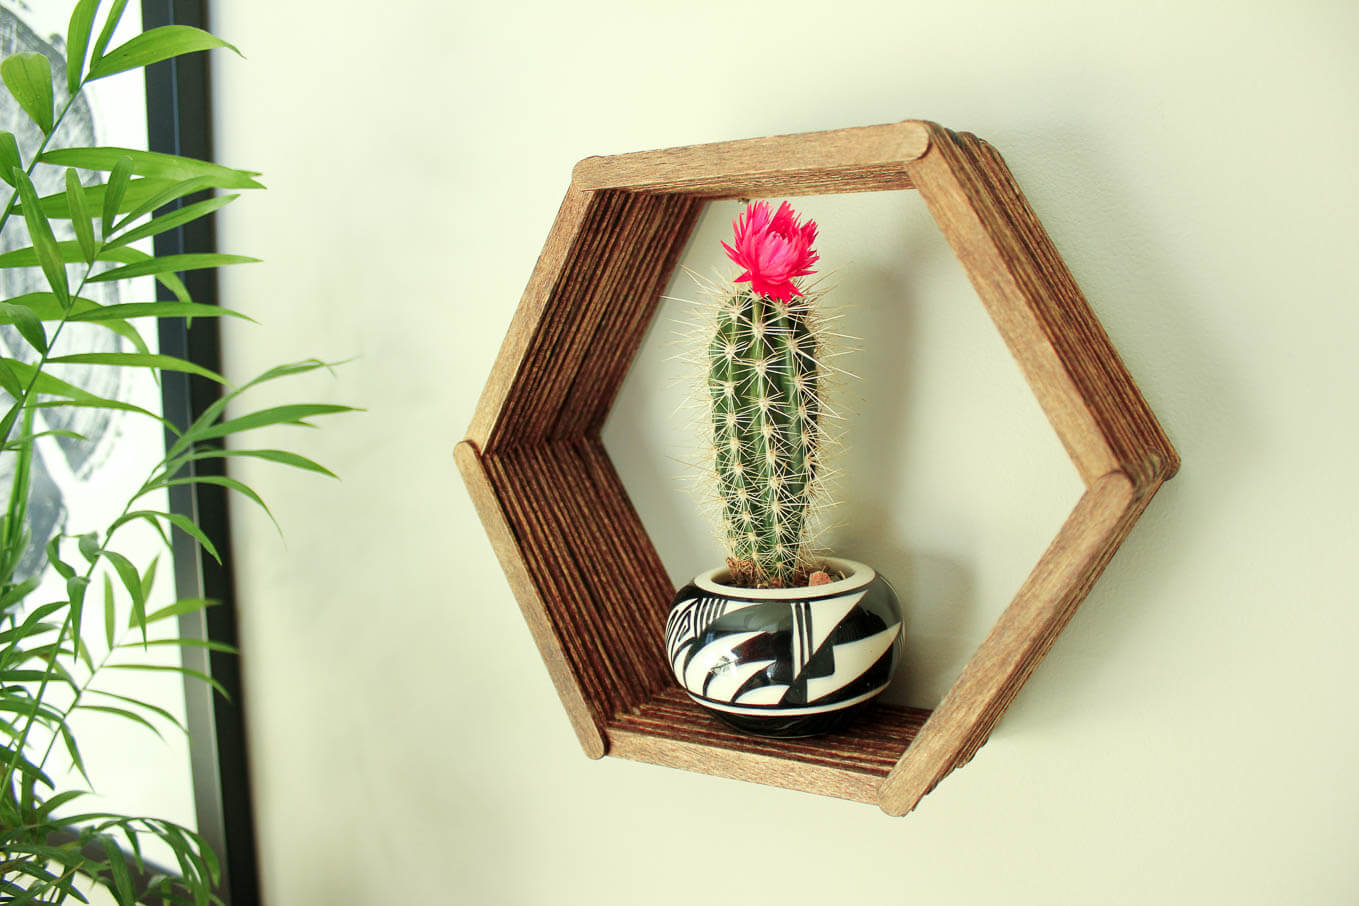 Diy Wall Art Popsicle Stick Hexagon Shelf Part I Make